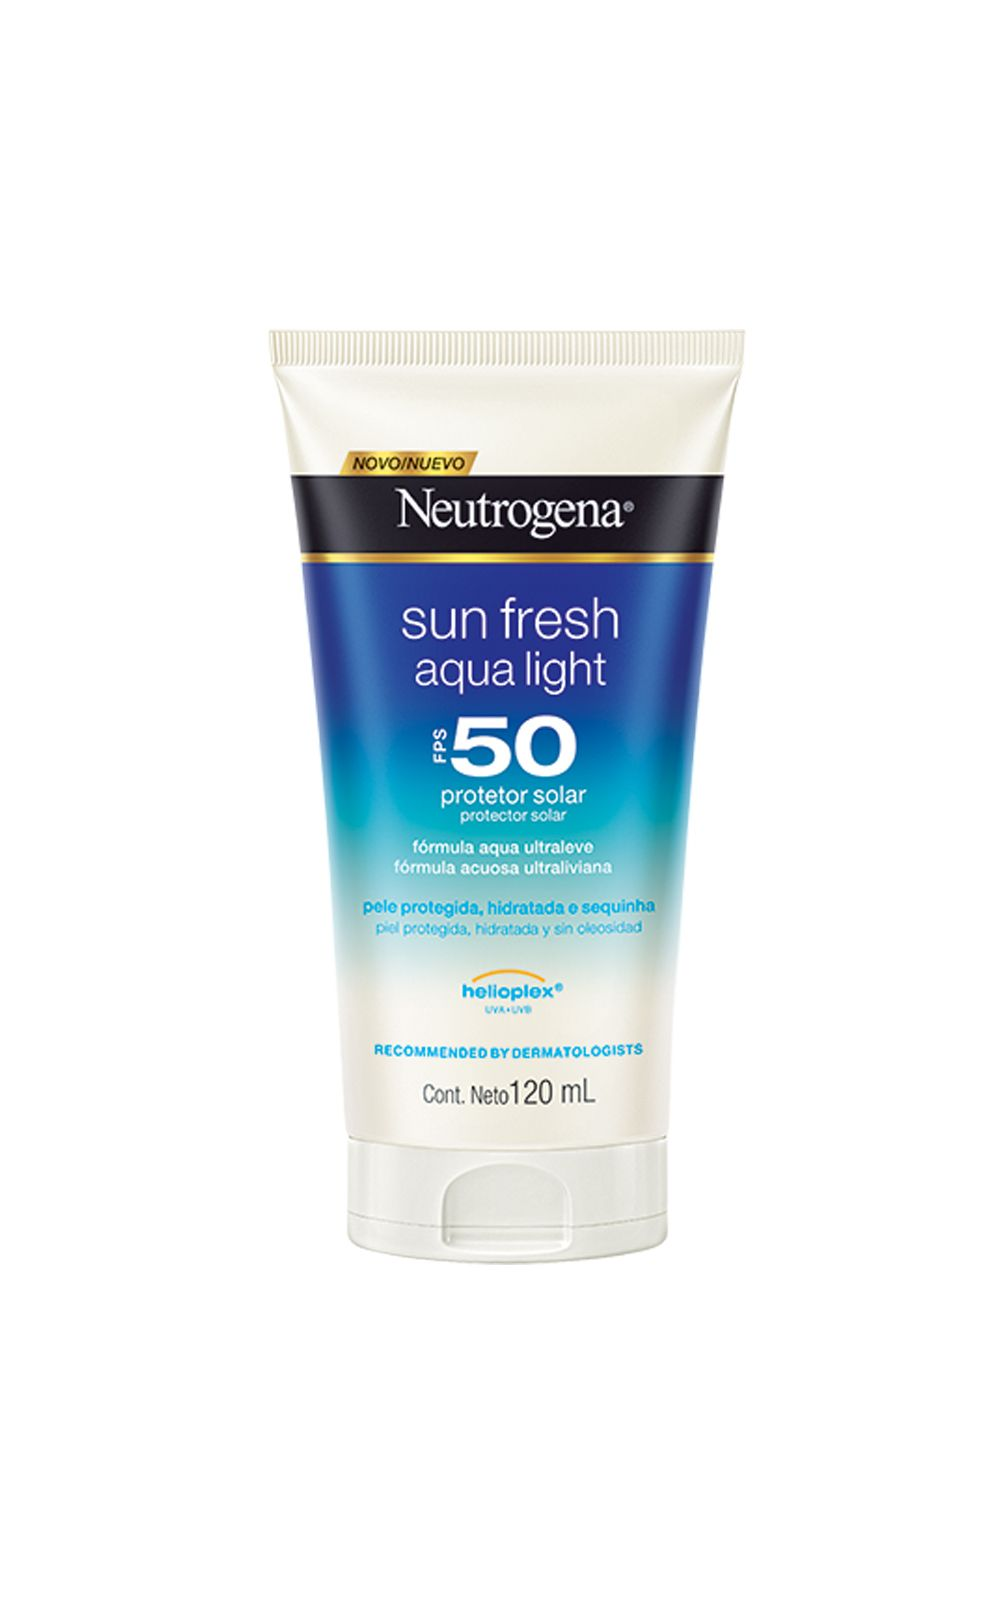 Foto 1 - Protetor Solar Neutrogena Sun Fresh Aqua Light FPS50 - 120ml